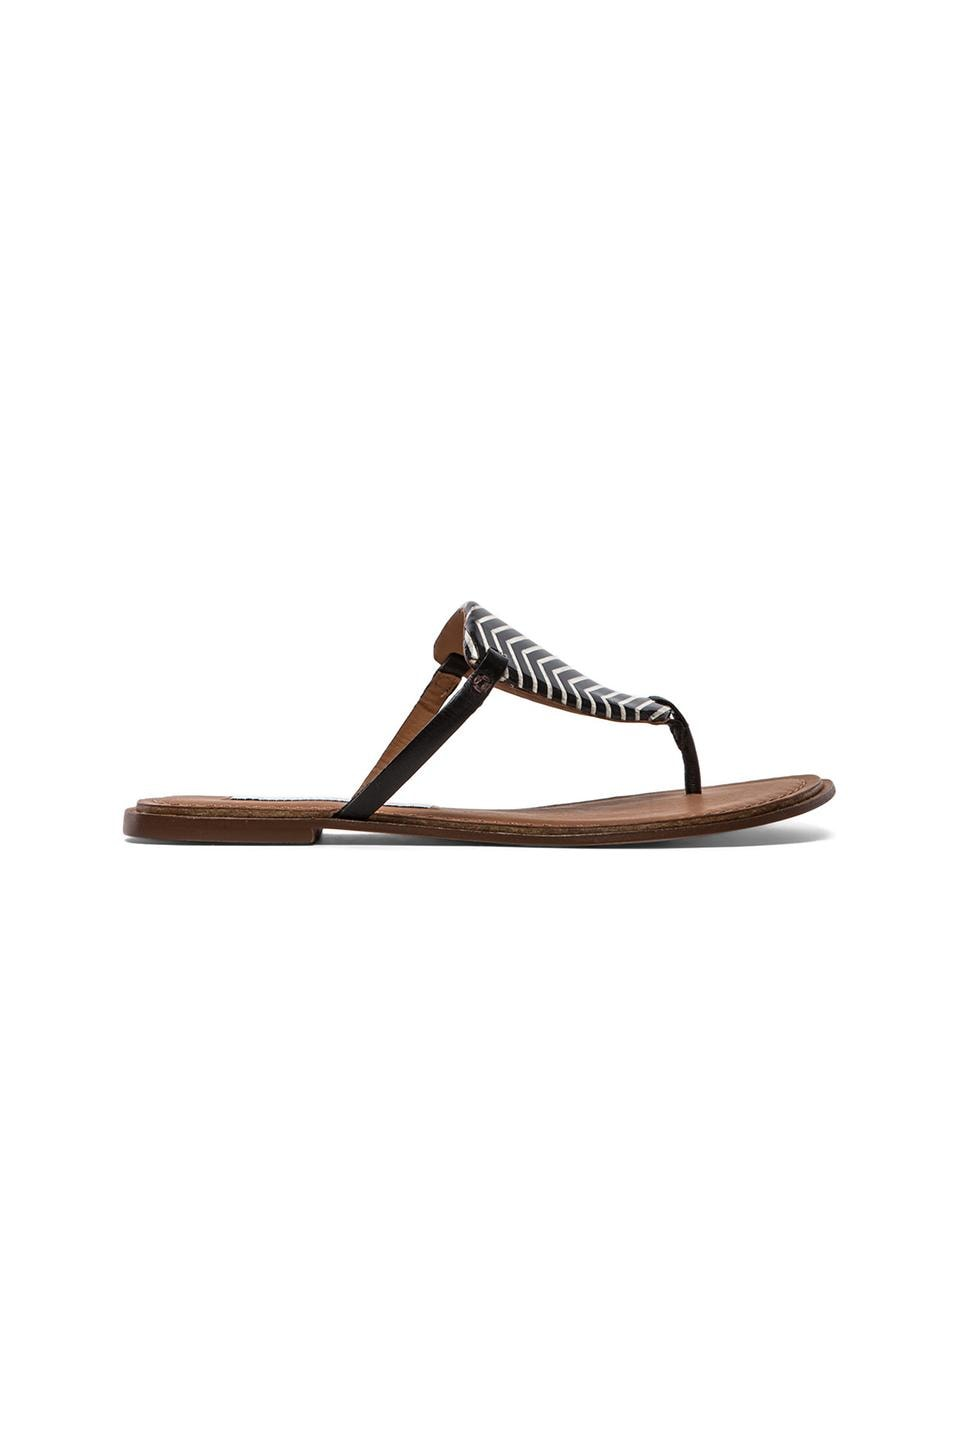 Diane von Furstenberg Kimberly Sandal in Black Multi